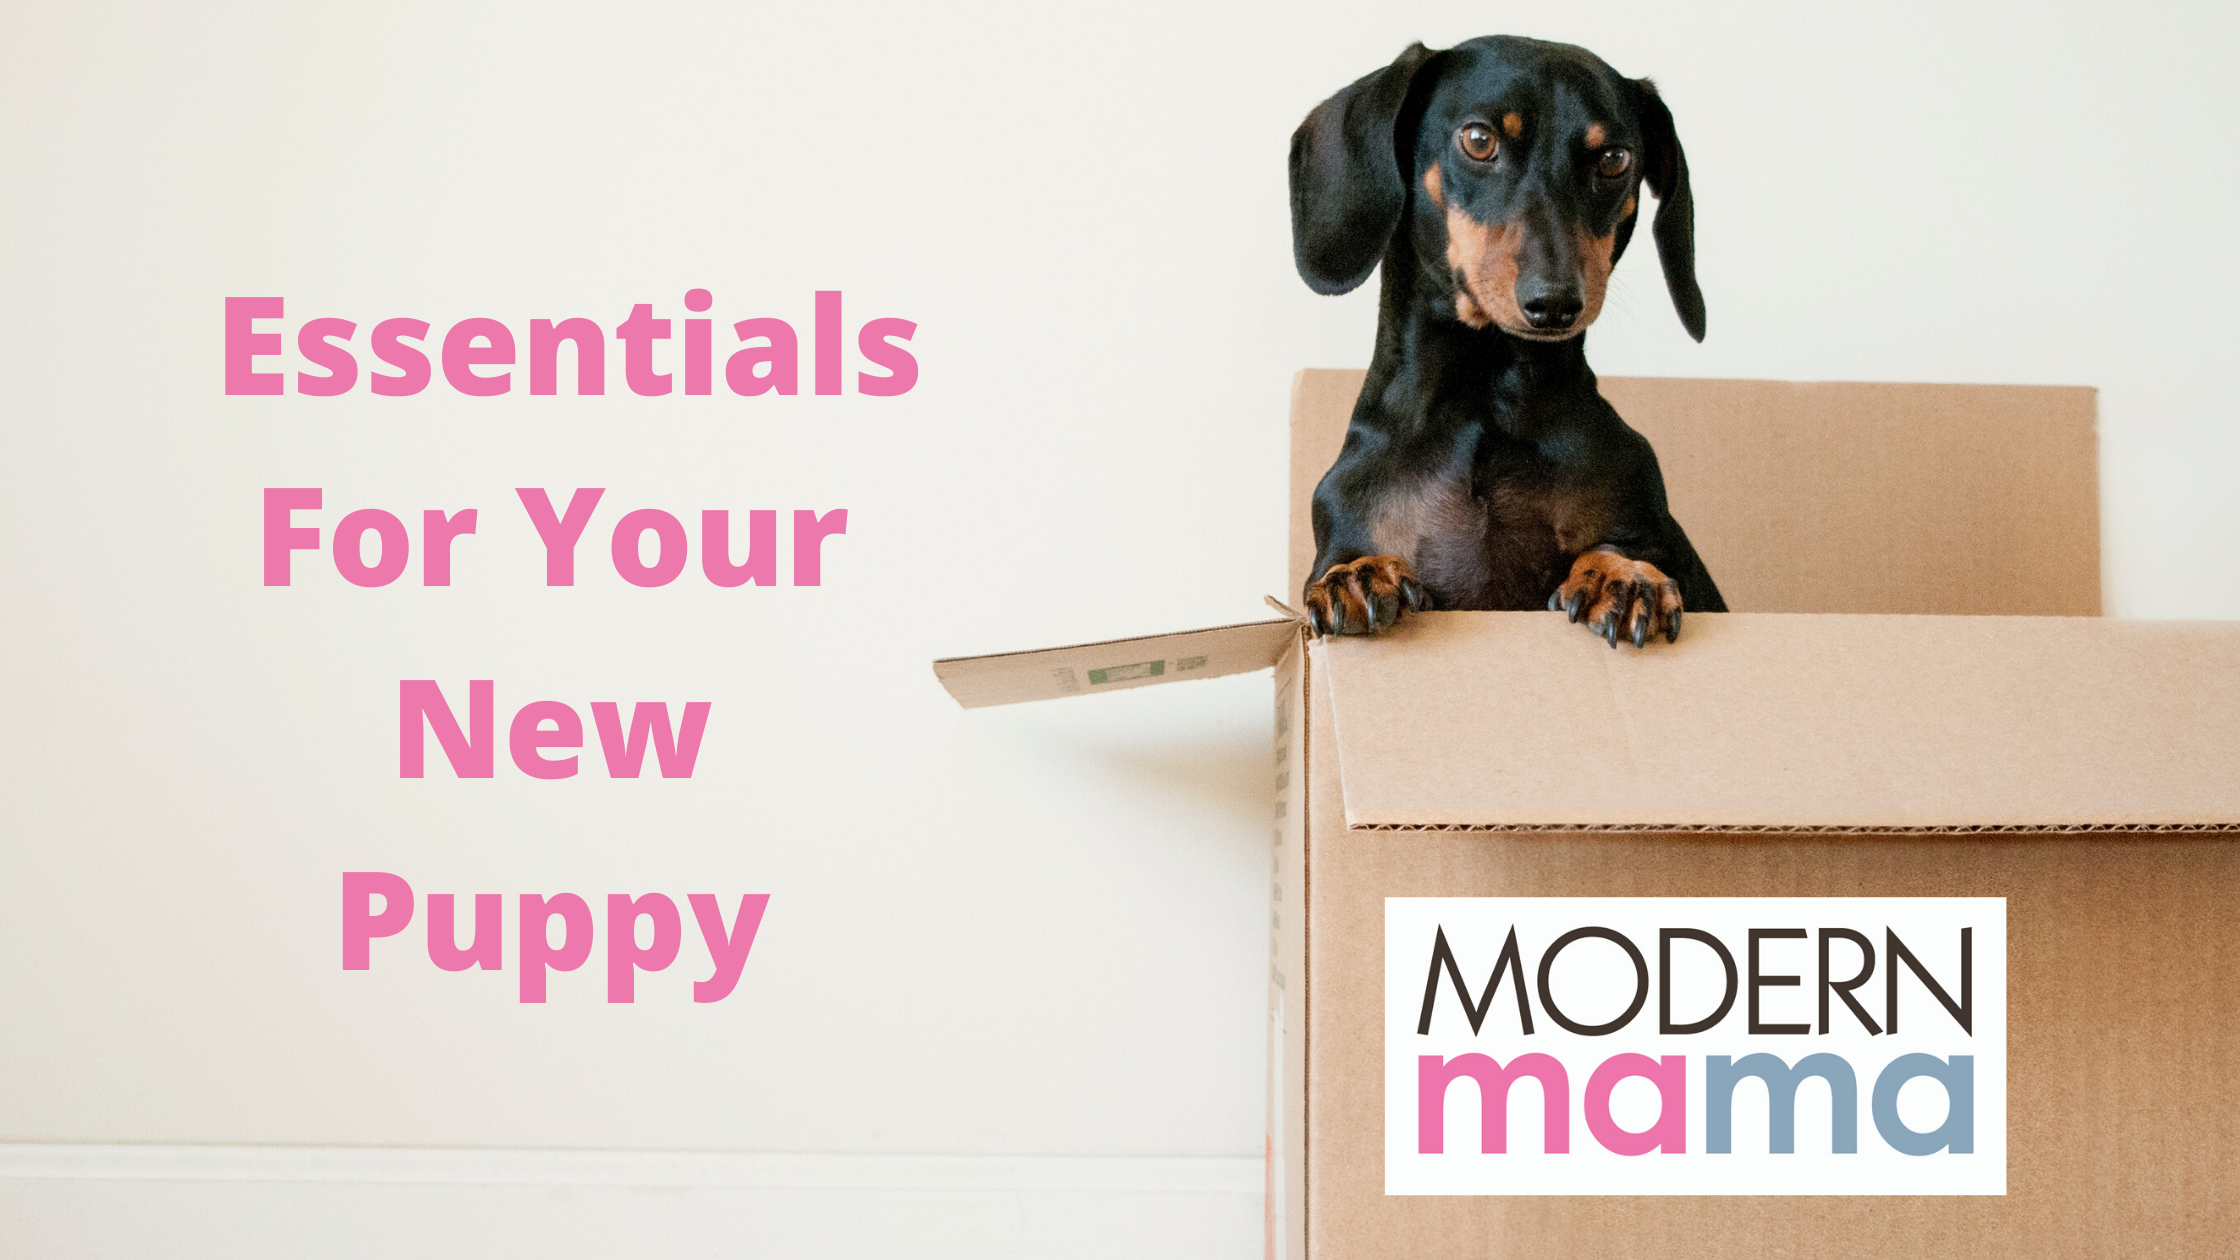 Essentials For Your New Puppy